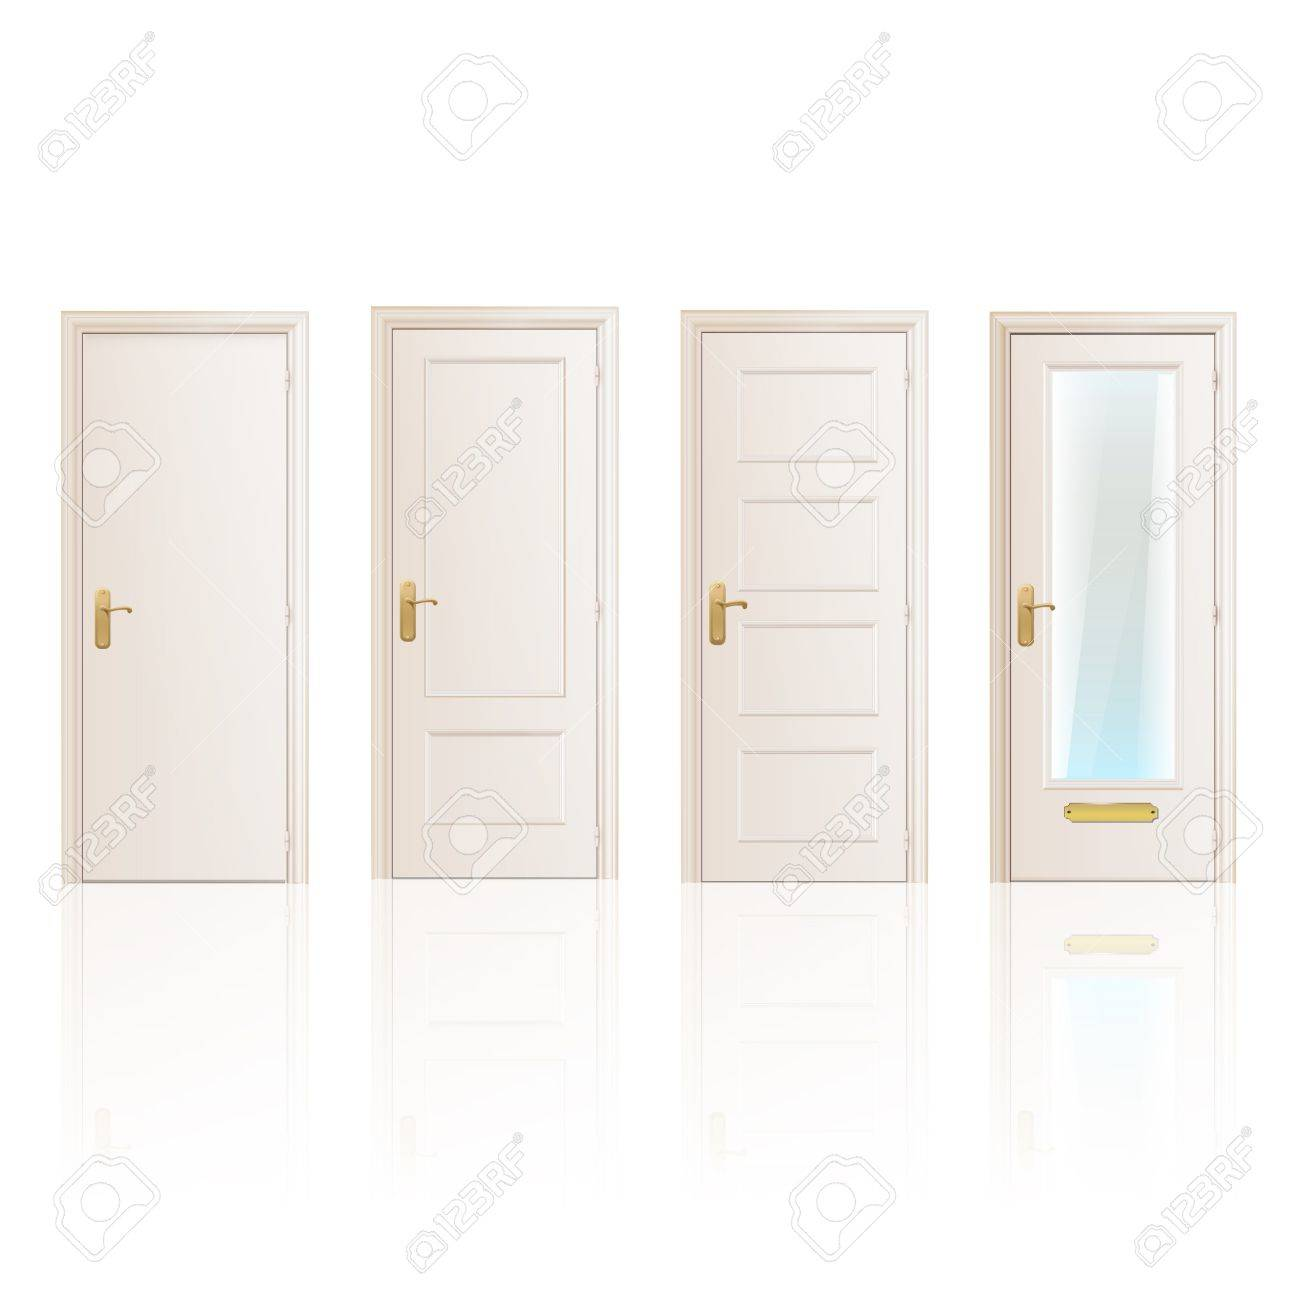 Set of white doors on isolated background. Vector design. Stock Vector - 19559018